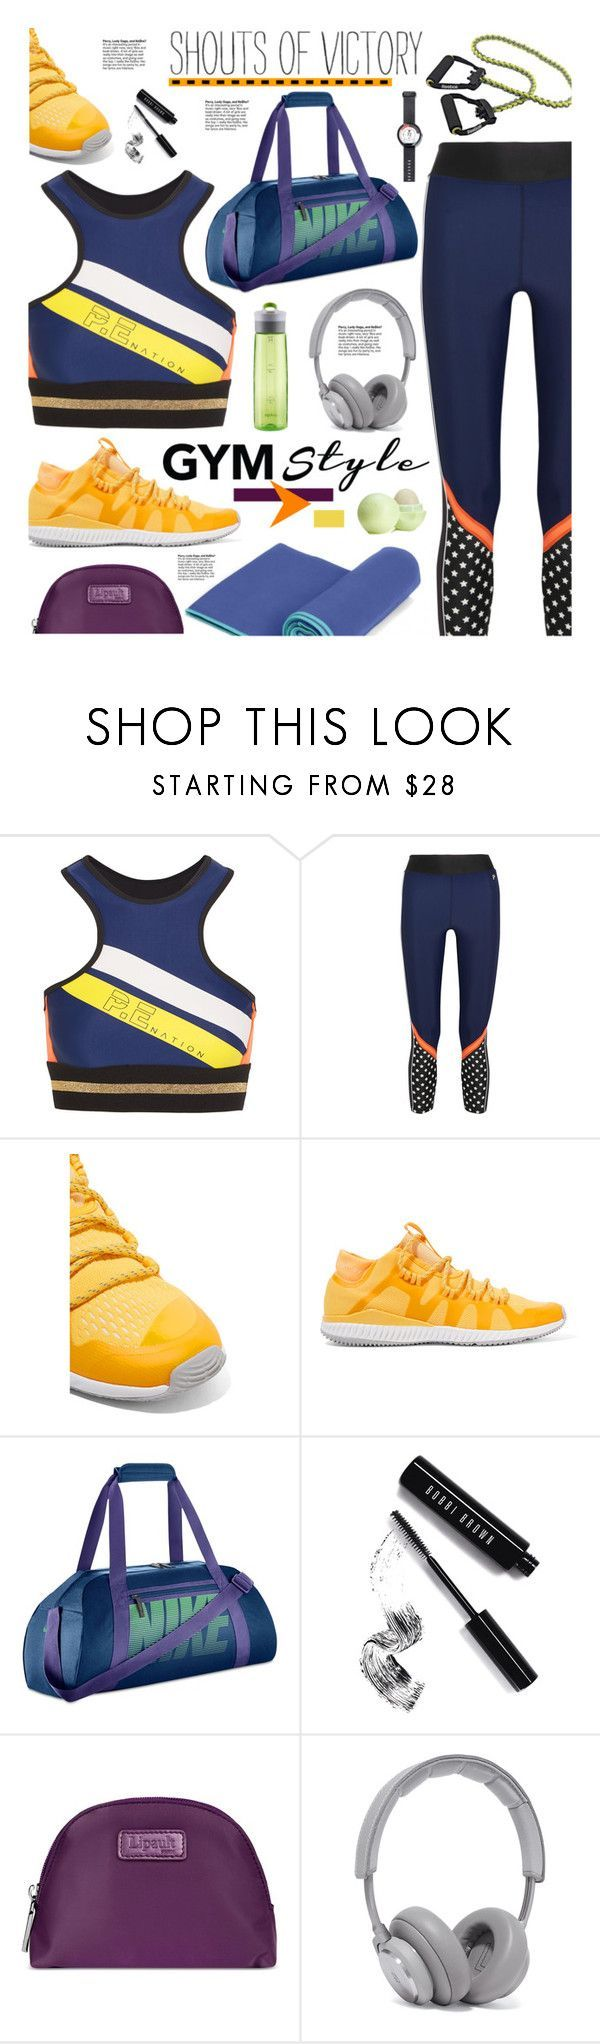 """Work It Out: Gym Essentials"" by hamaly ❤ liked on Polyvore featuring P.E Nation, adidas, NIKE, Bobbi Brown Cosmetics, Lipault, B&O Play and Ÿù Get a $100 Adidas Gift Card!  Adidas, Adidas Sneakers, Adidas Outlet, Adidas Nmd, Adidas Shoes, Adidas Apparel, Adidas Boost, Adidas Boost Shoes, Adidas Clothing, Adidas Dress, Adidas Essentials, Adidas Kids, Adidas Leggings, Adidas Nmd Runner, Adidas Quality, Adidas Superstar, Adidas Store, Adidas Vs Nike, Adidas Zipper, Adidas Zappos, Adidas…"